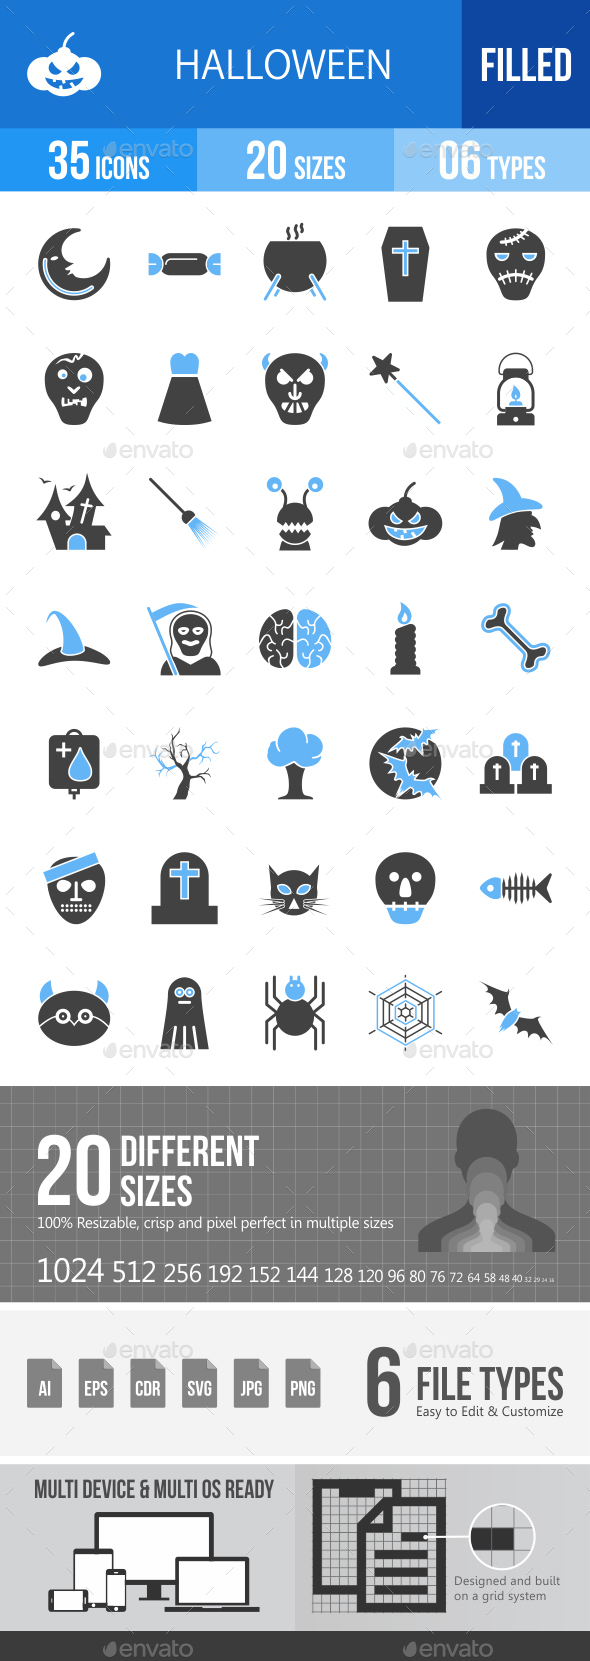 35 Halloween Filled Blue & Black Icons - Icons